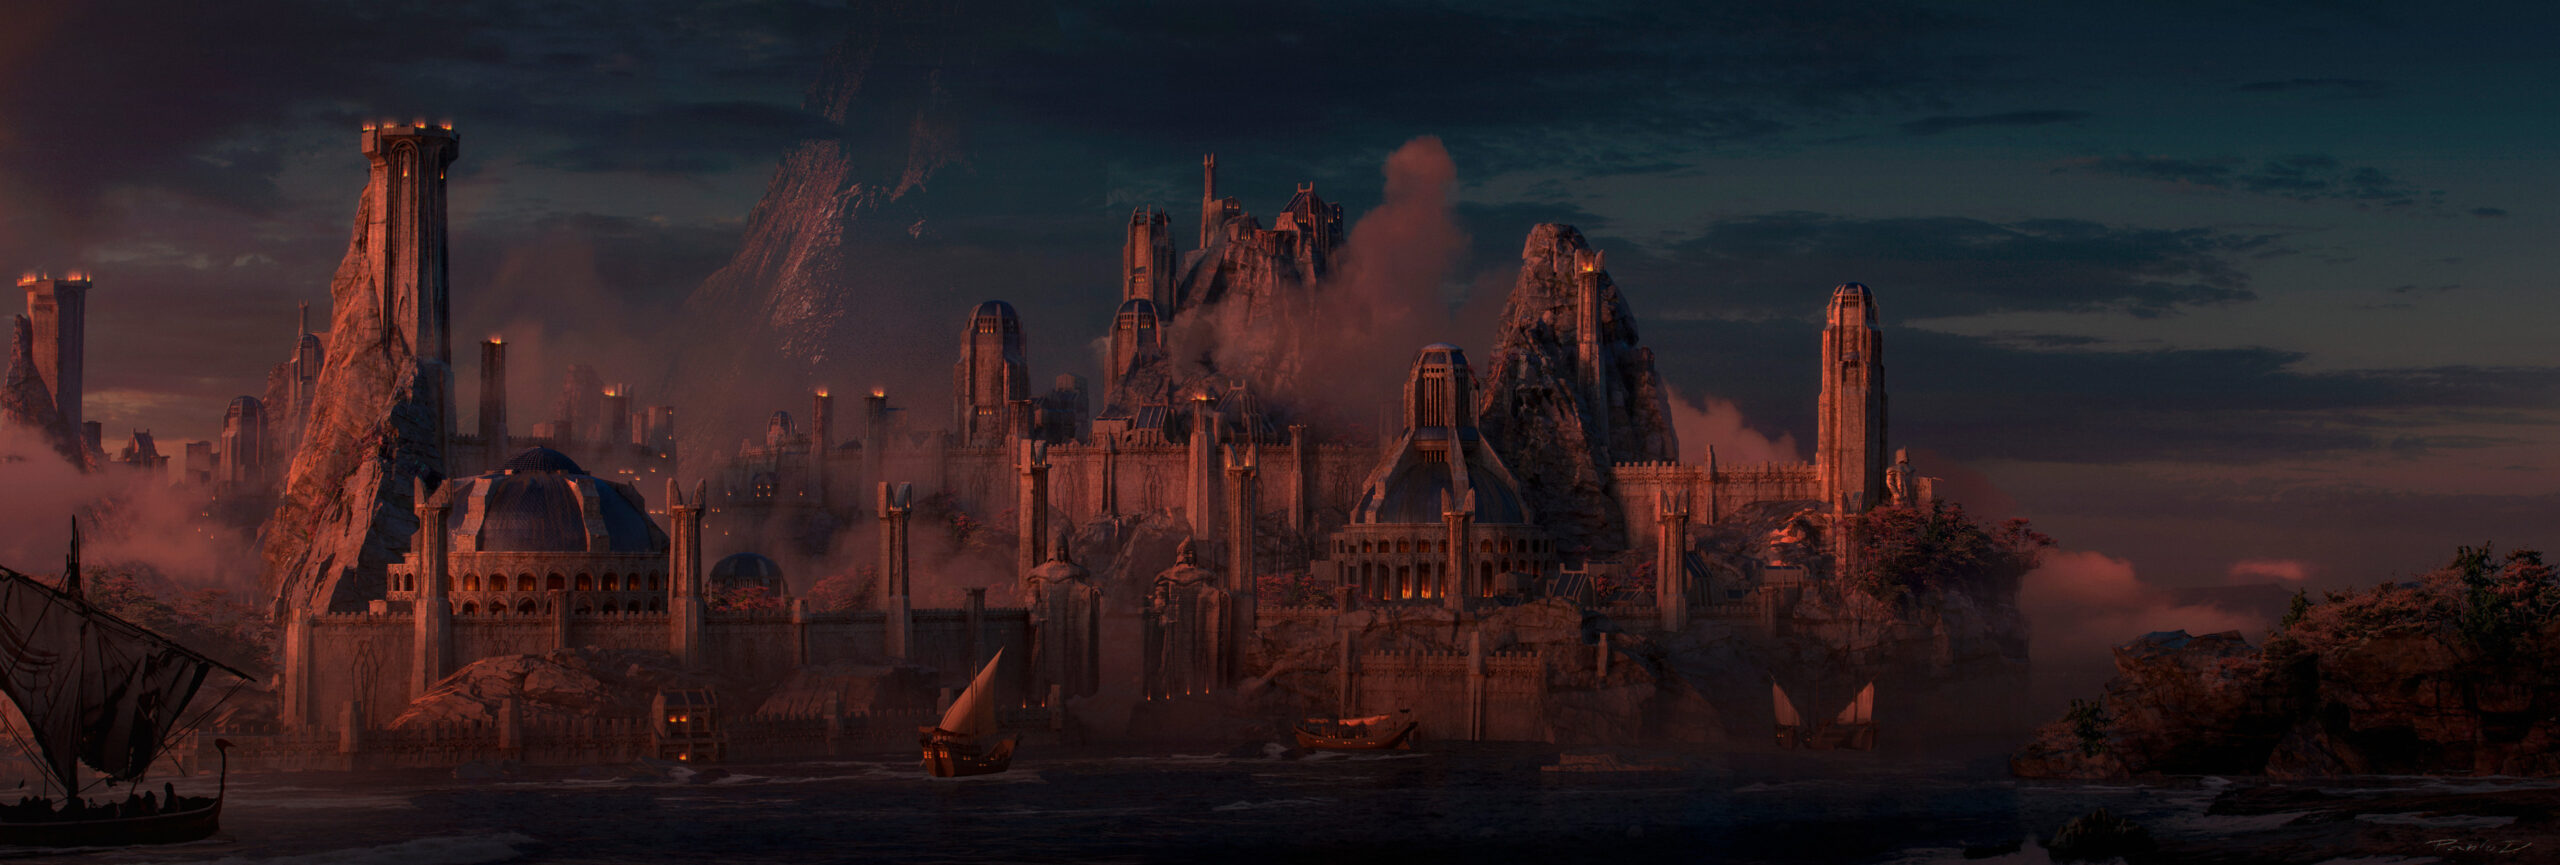 Artwork inspired by Númenor from the J. R. R. Tolkien books and mythology worldbuilding design zbrush photoshop 3d